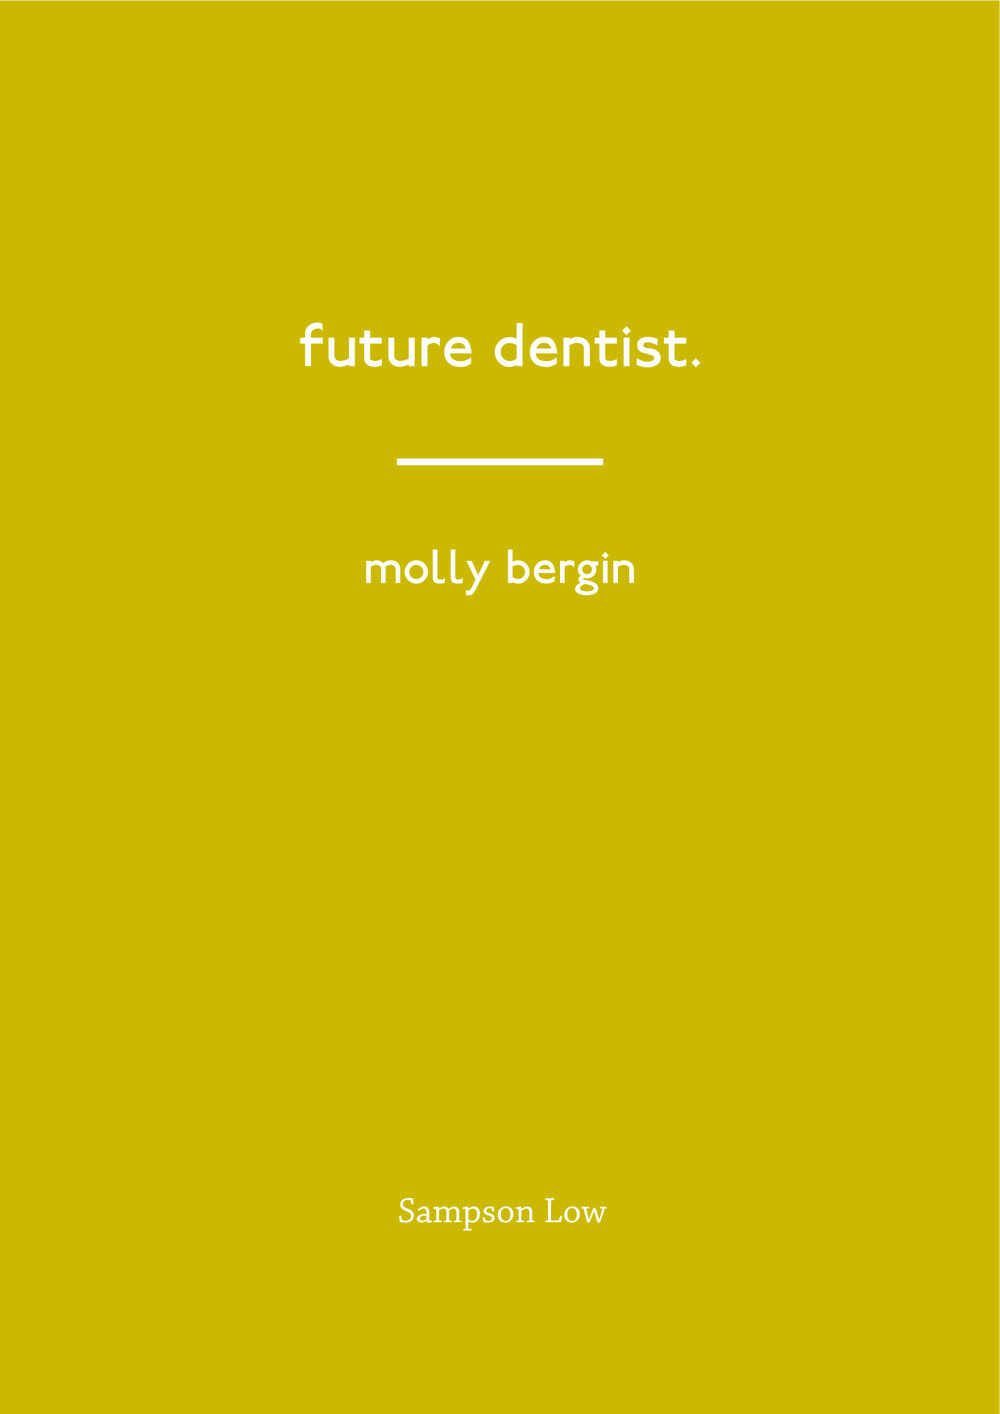 Future_Dentist_Molly_Bergin_2.jpg